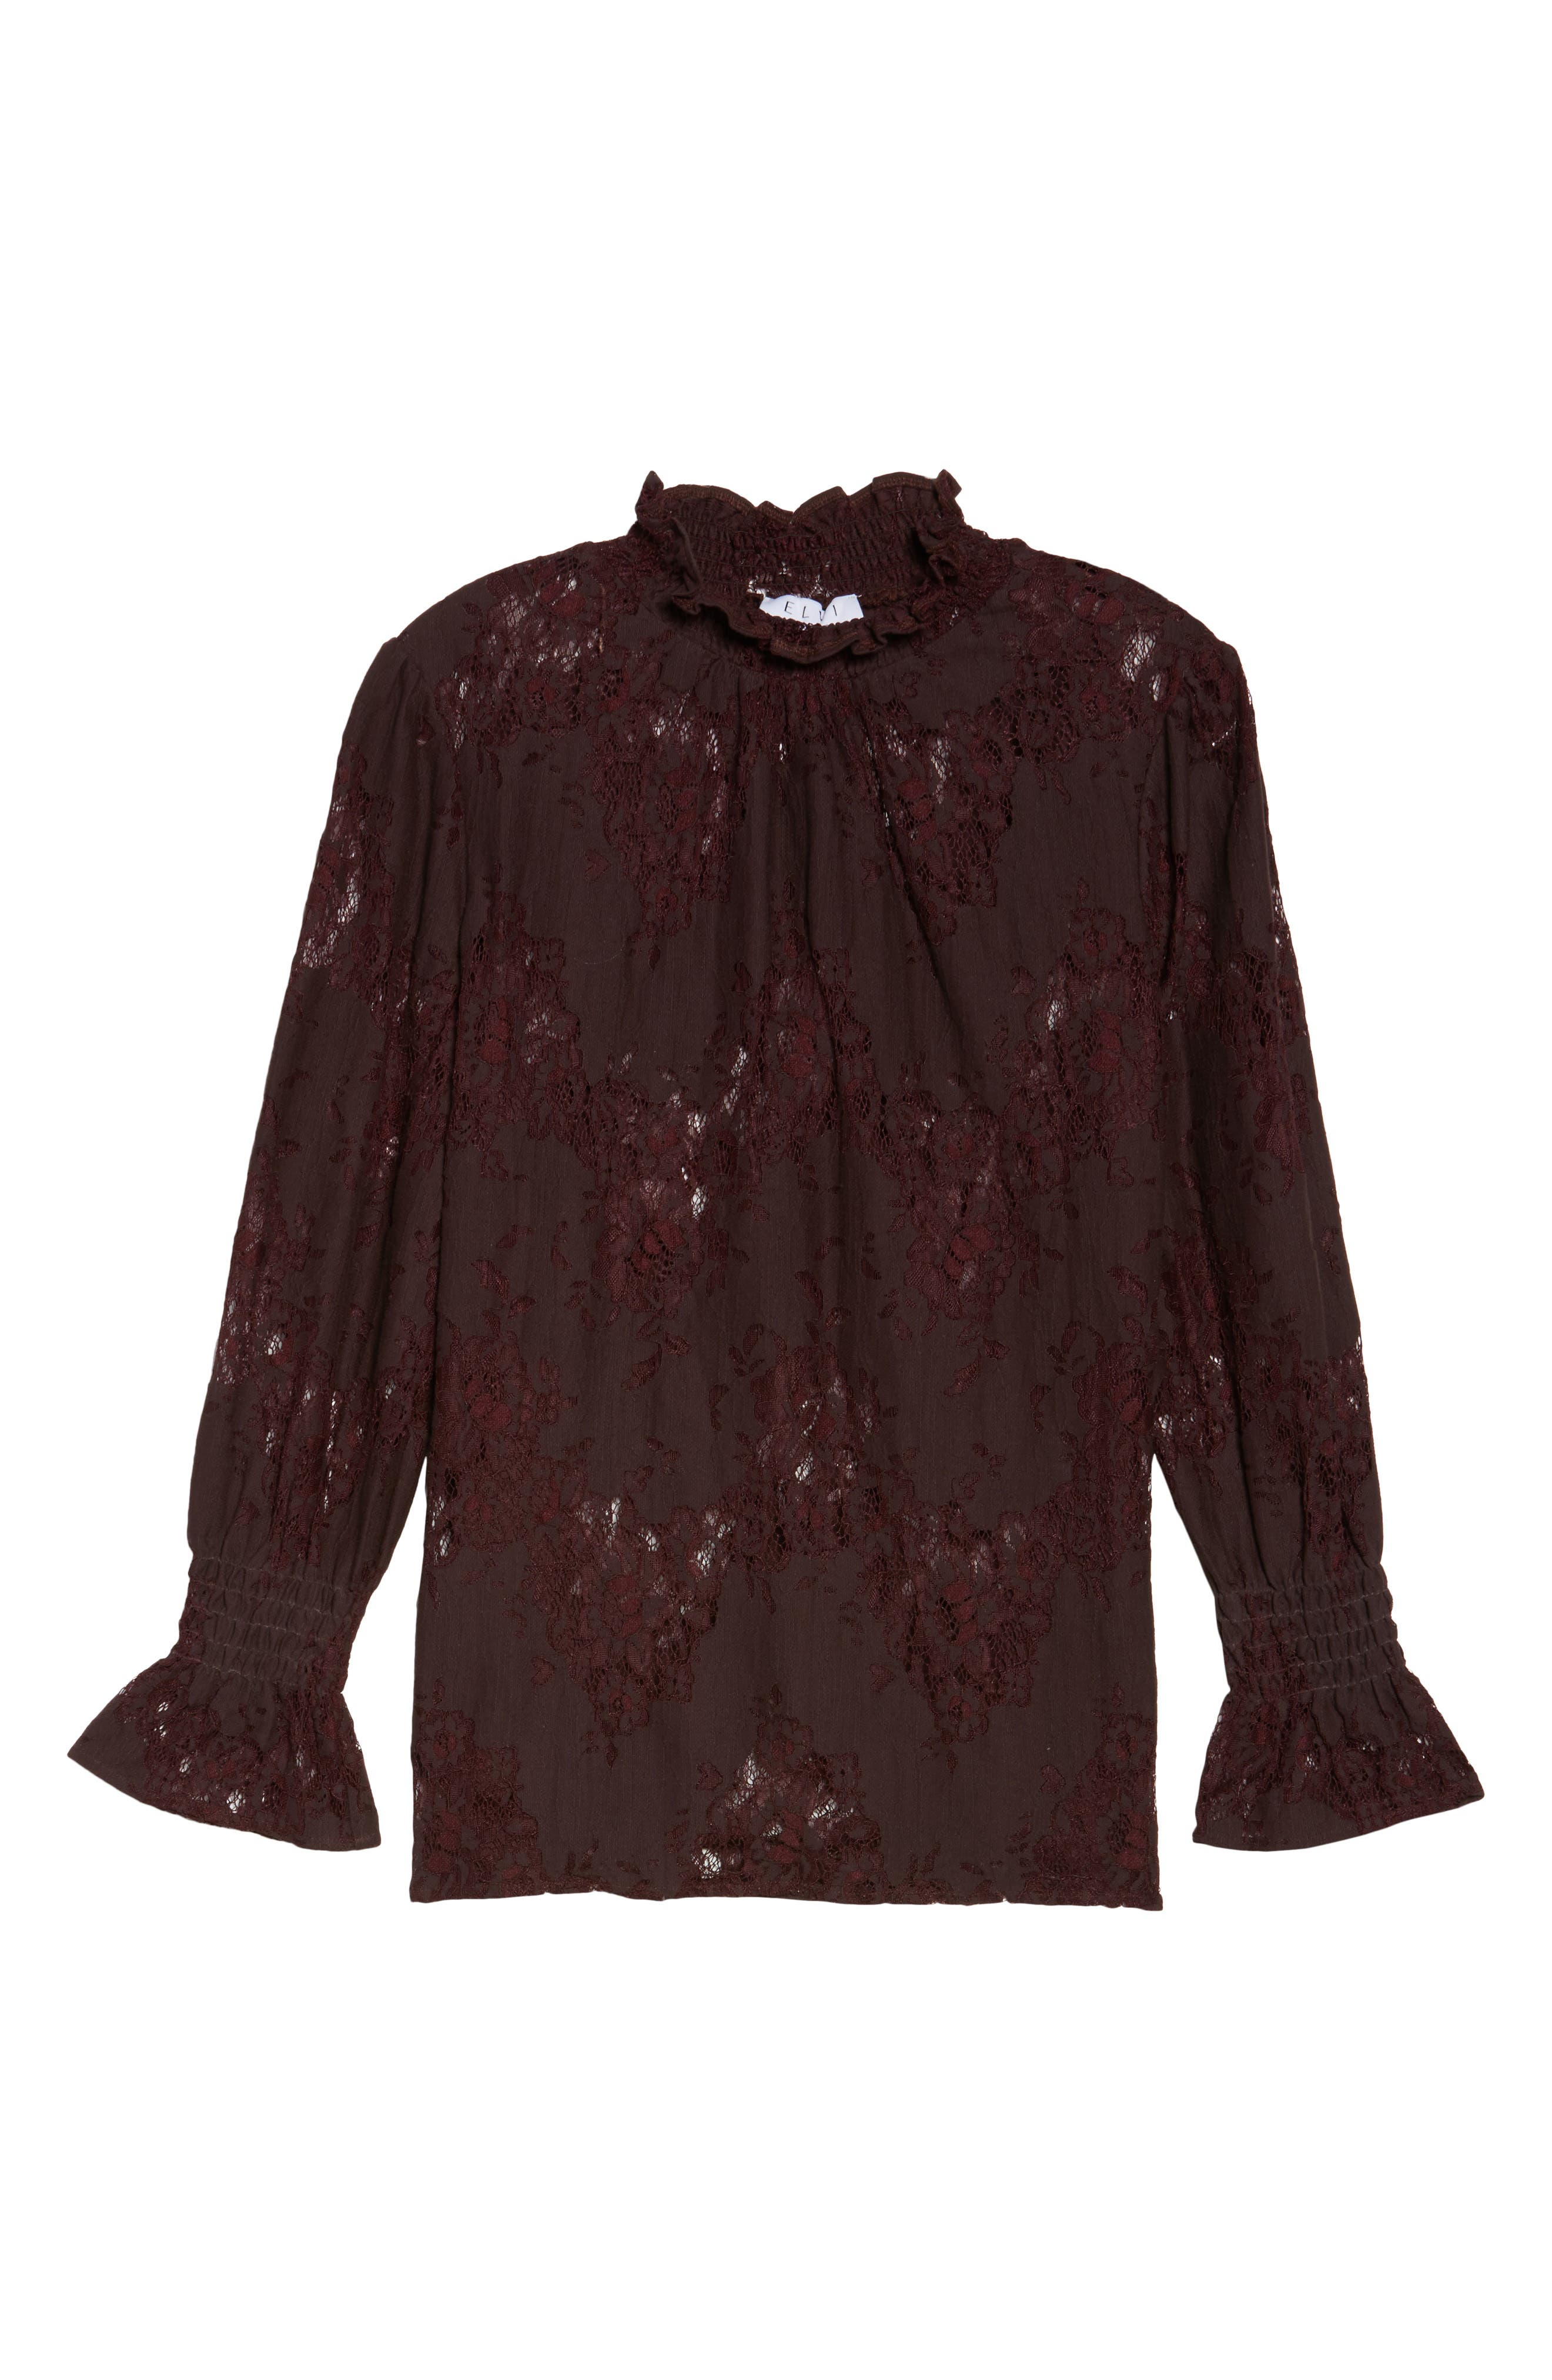 High Neck Ruffle & Lace Blouse,                             Alternate thumbnail 6, color,                             Burgundy